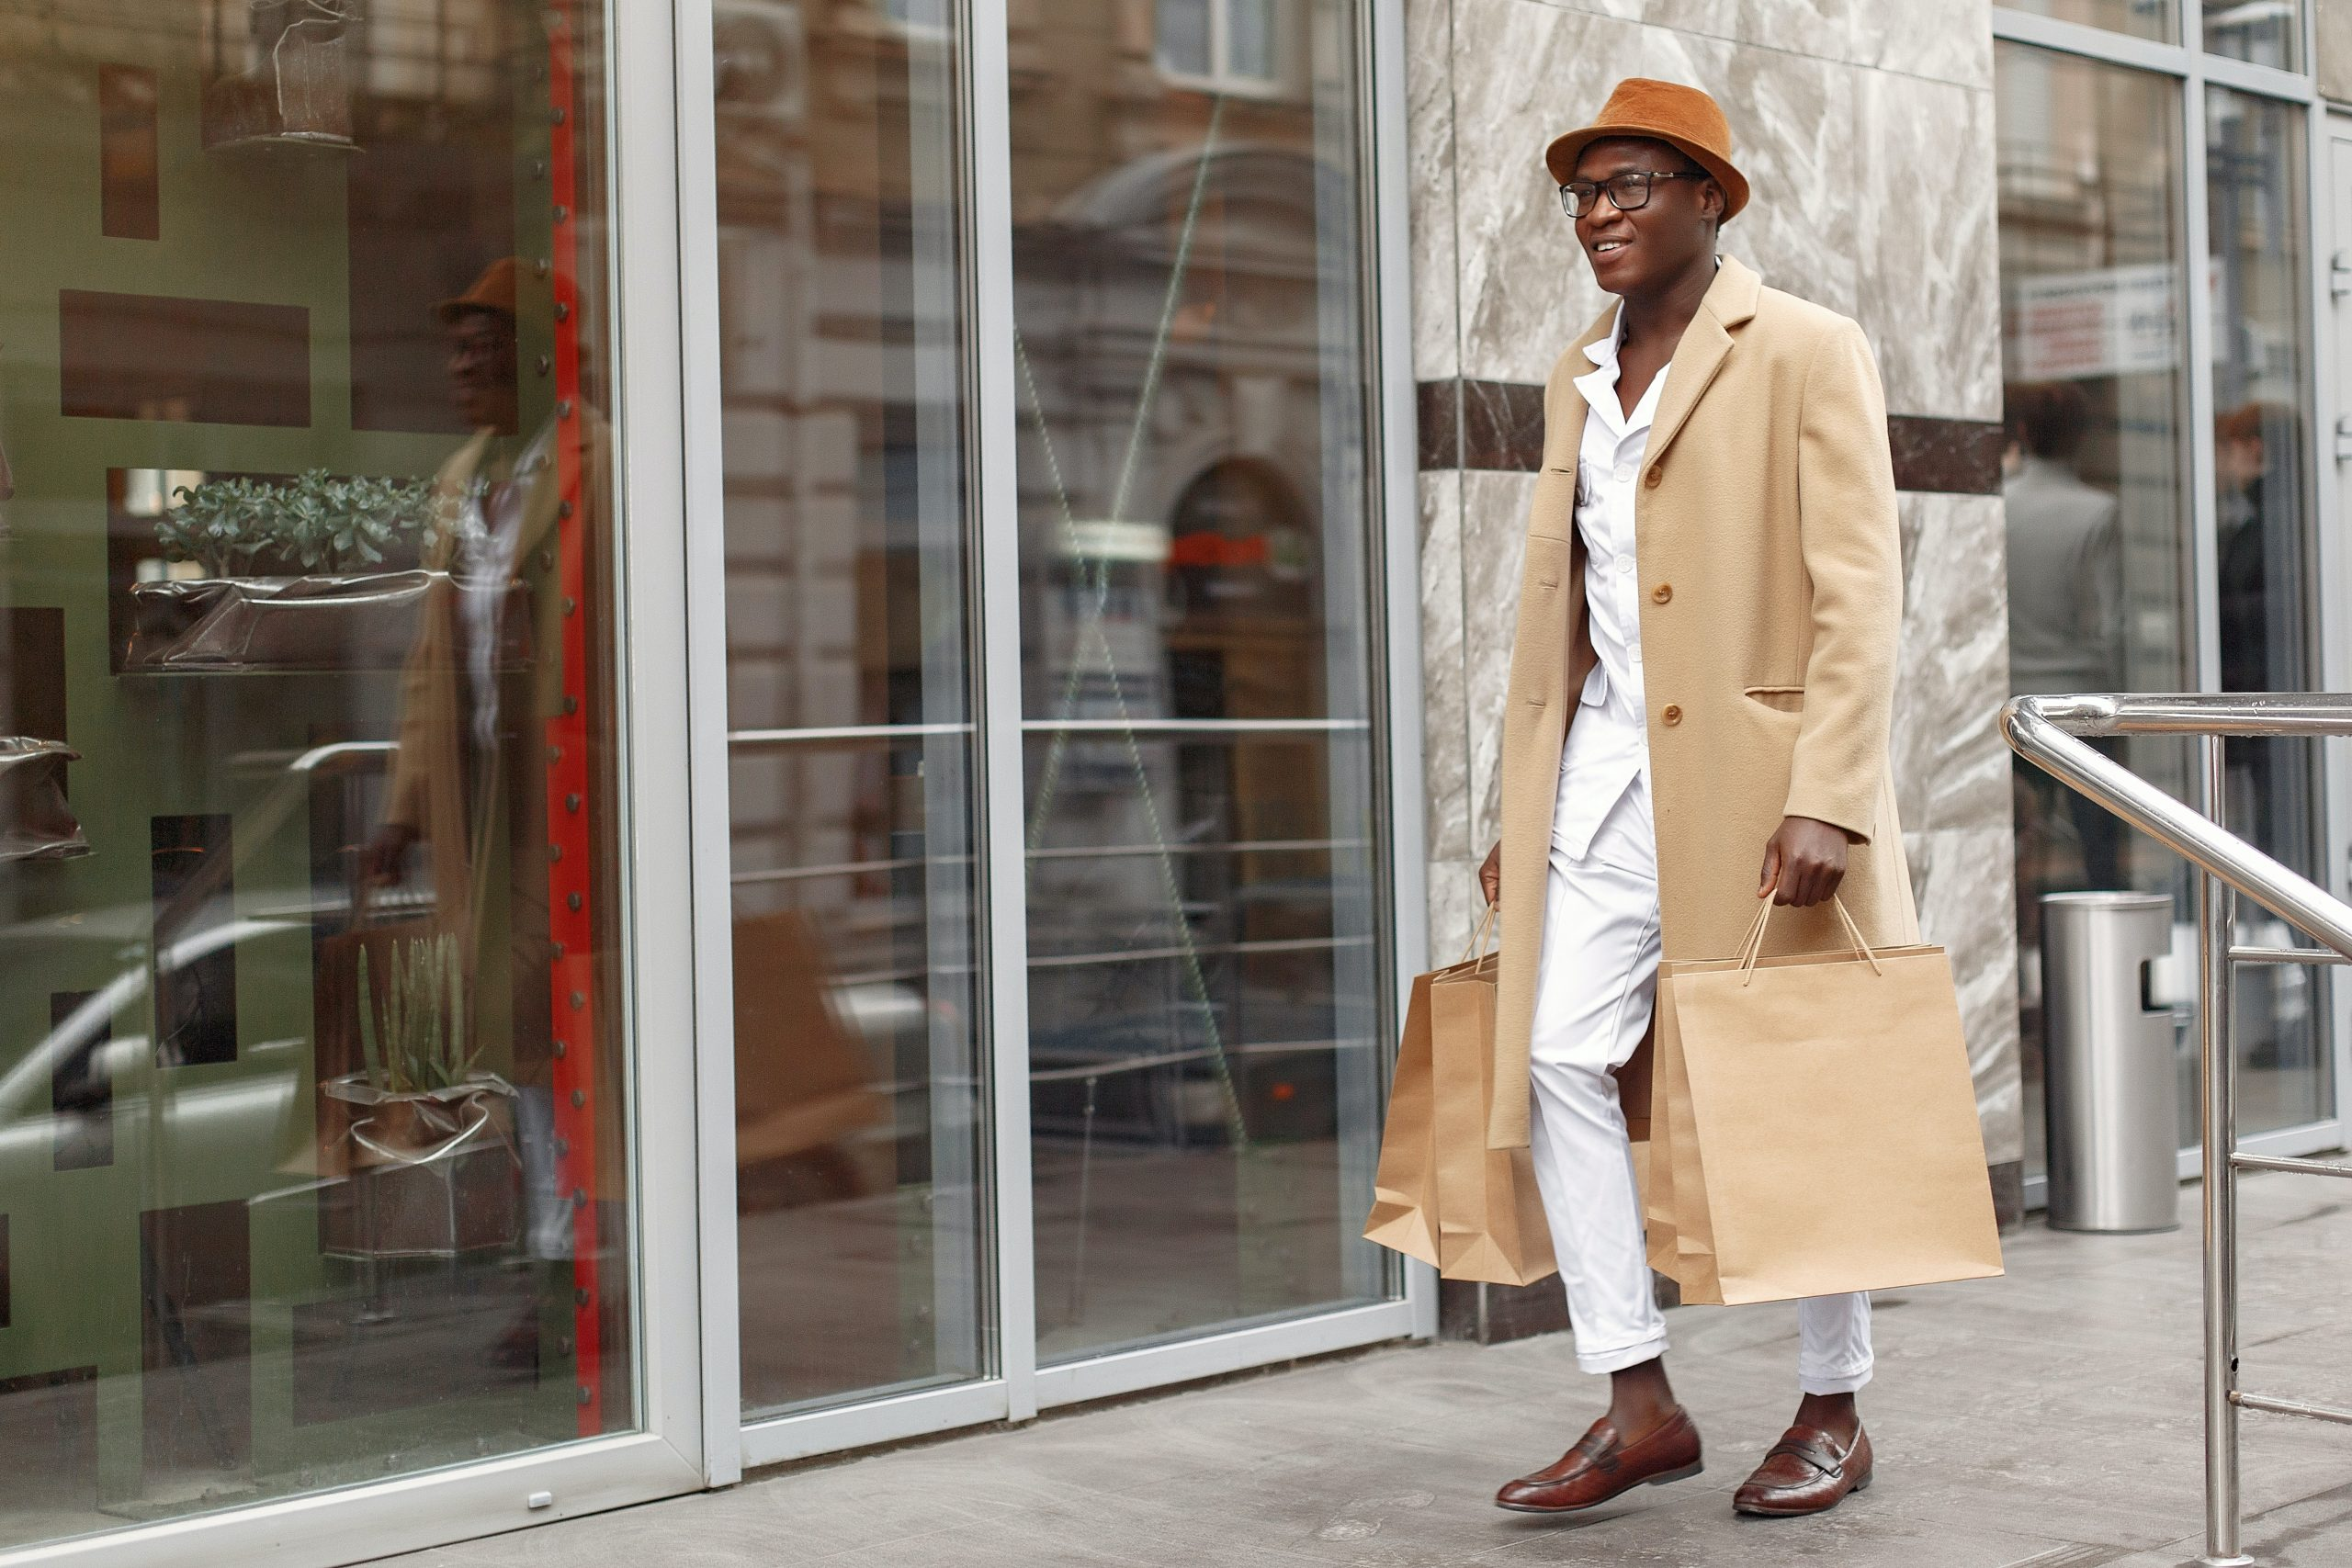 Man walking in beige pea coat with two shopping bags